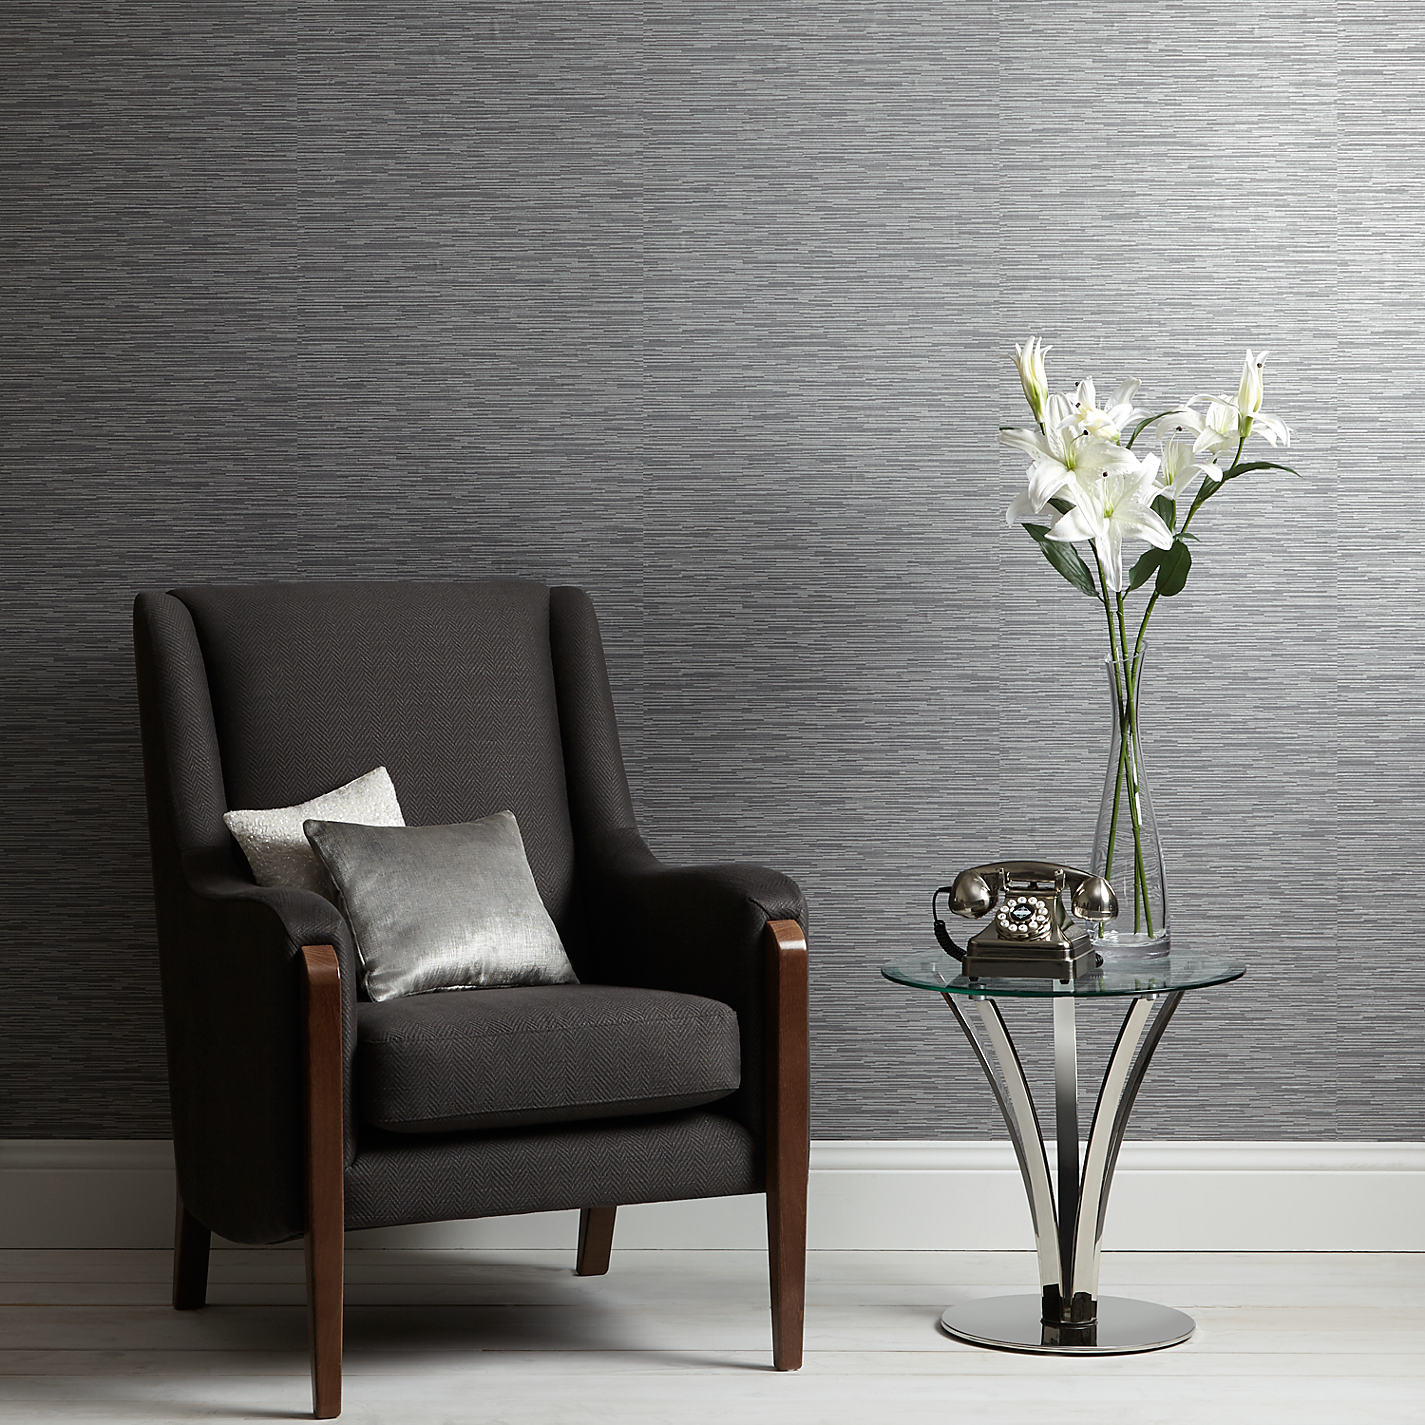 Buy john lewis denton vinyl wallpaper john lewis buy john lewis denton vinyl wallpaper online at johnlewis gumiabroncs Images